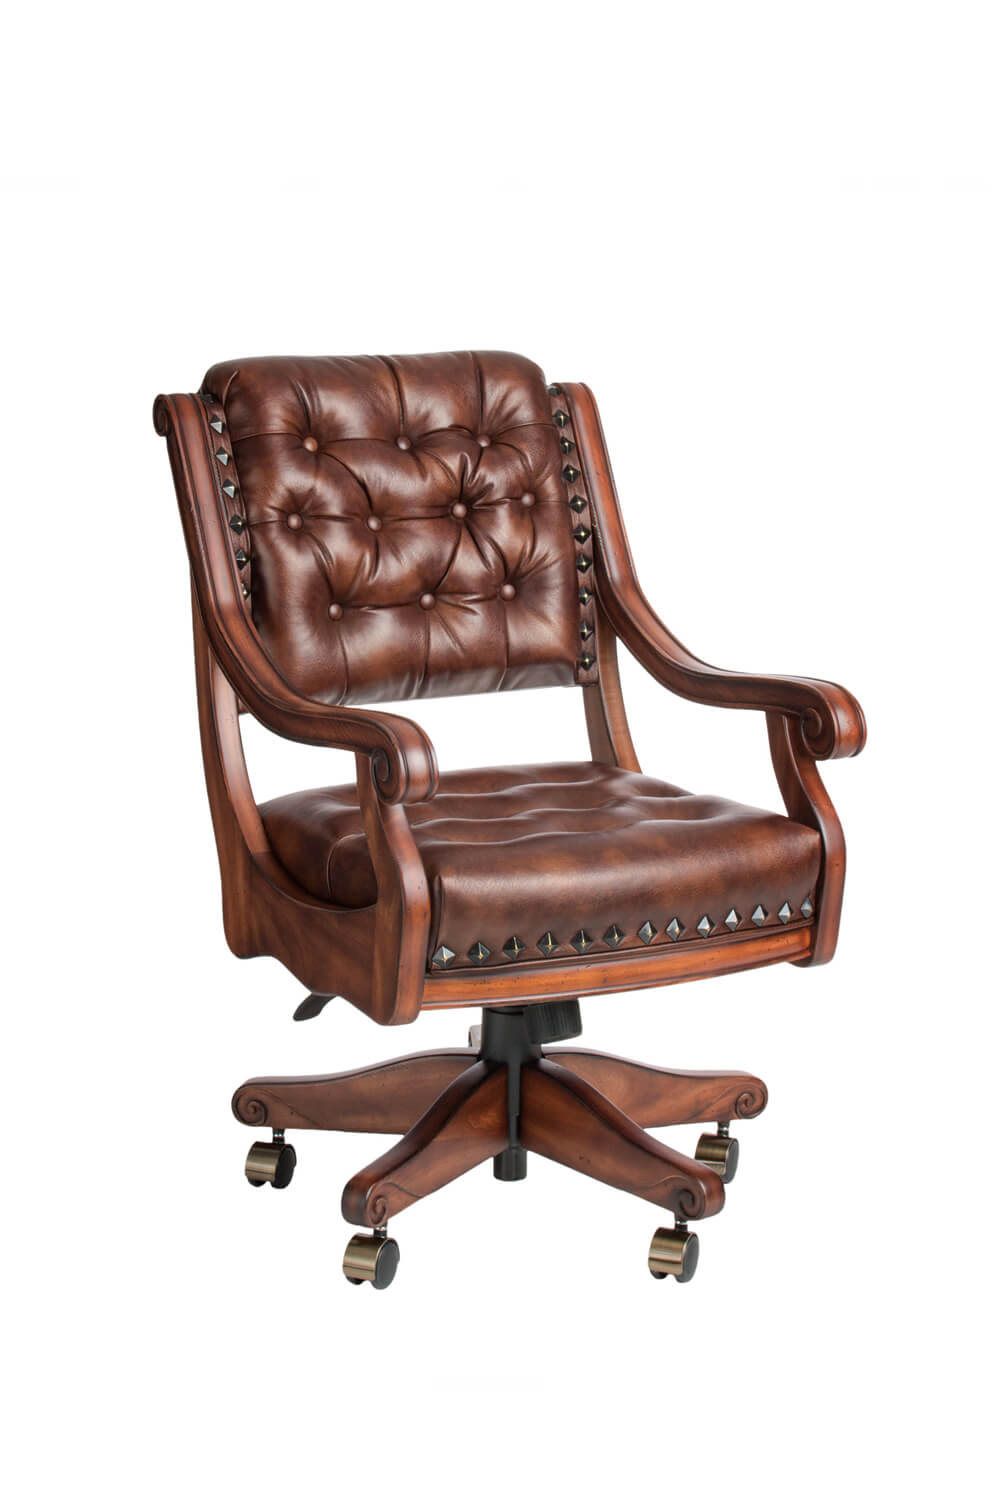 Ponce De Leon Maple Adjustable Swivel Game Chair with Arms